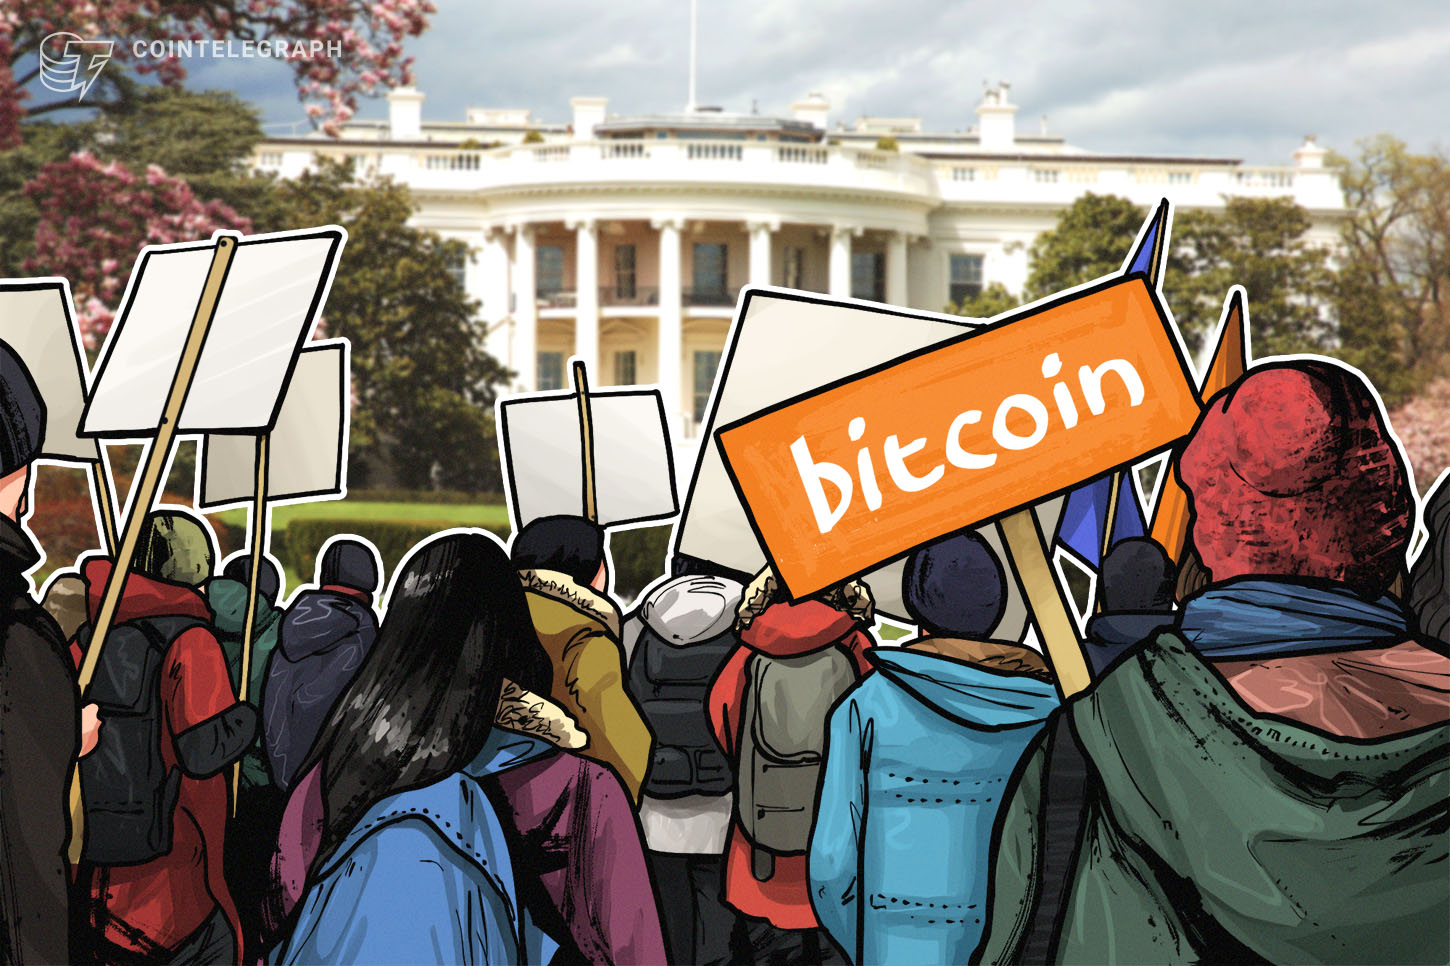 Protestors Invoke Bitcoin in the Wake of George Floyd's Death